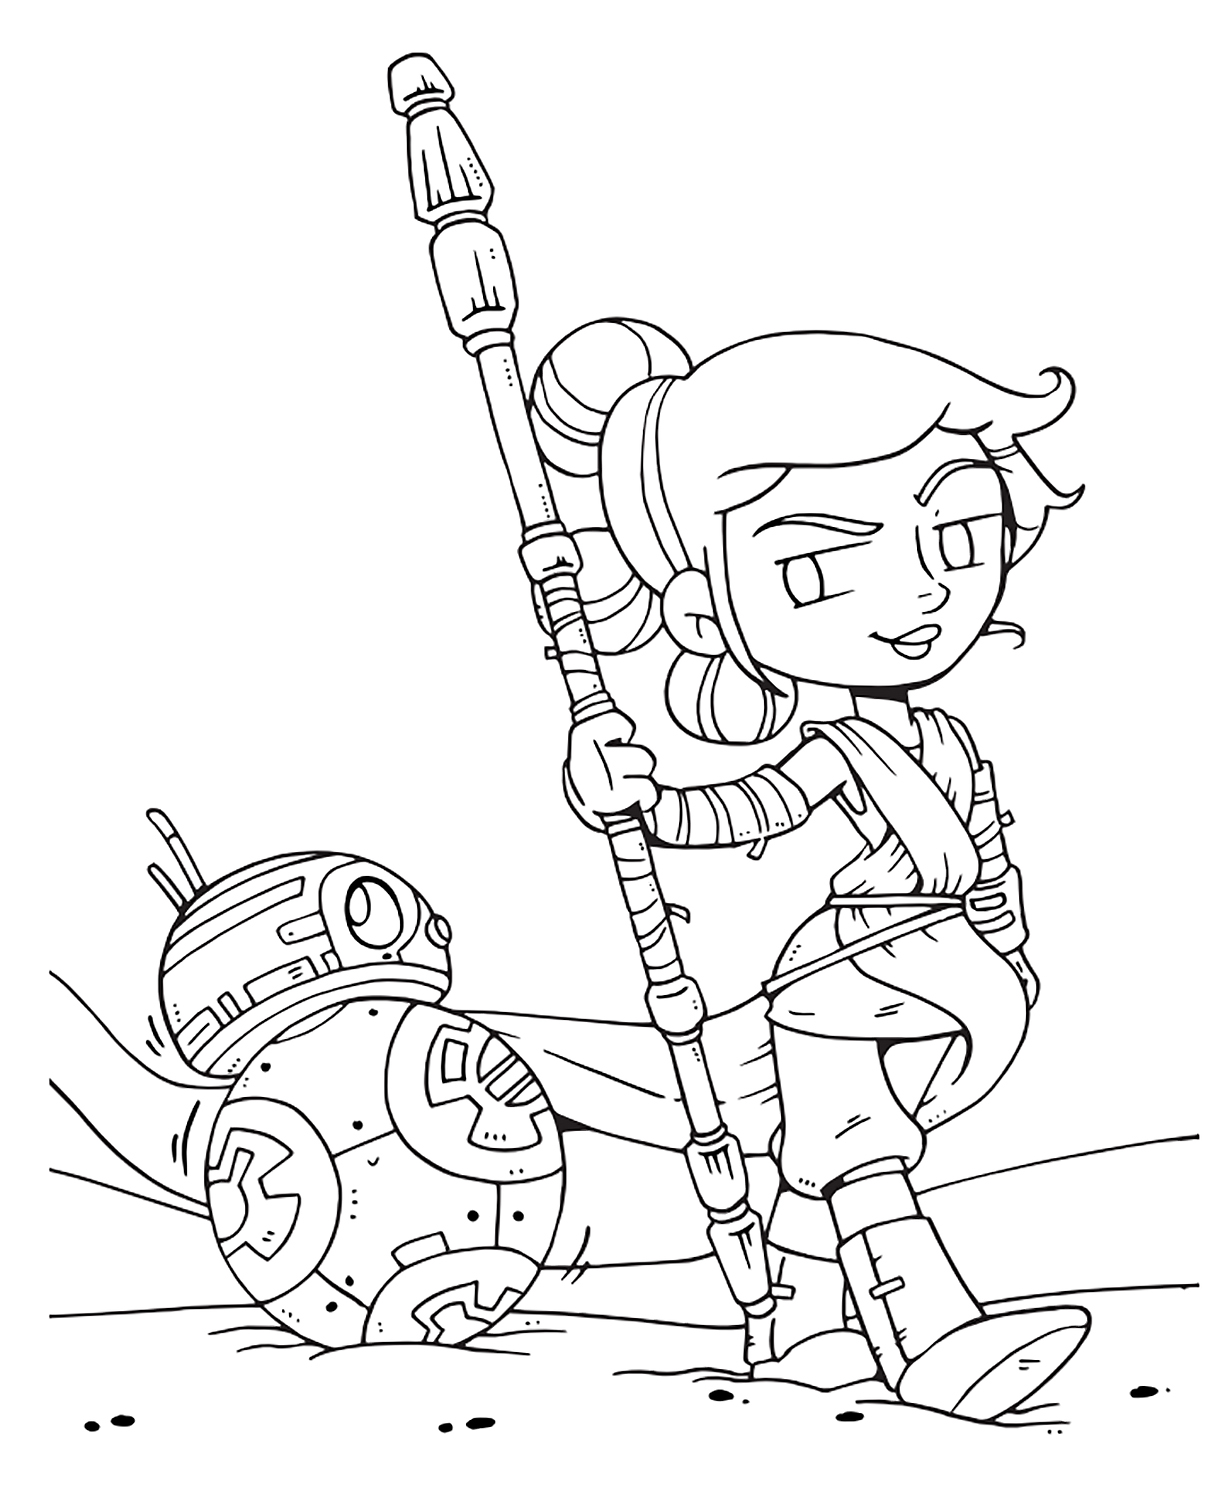 Captivating Star Wars: The Last Jedi Cute Coloring Pages